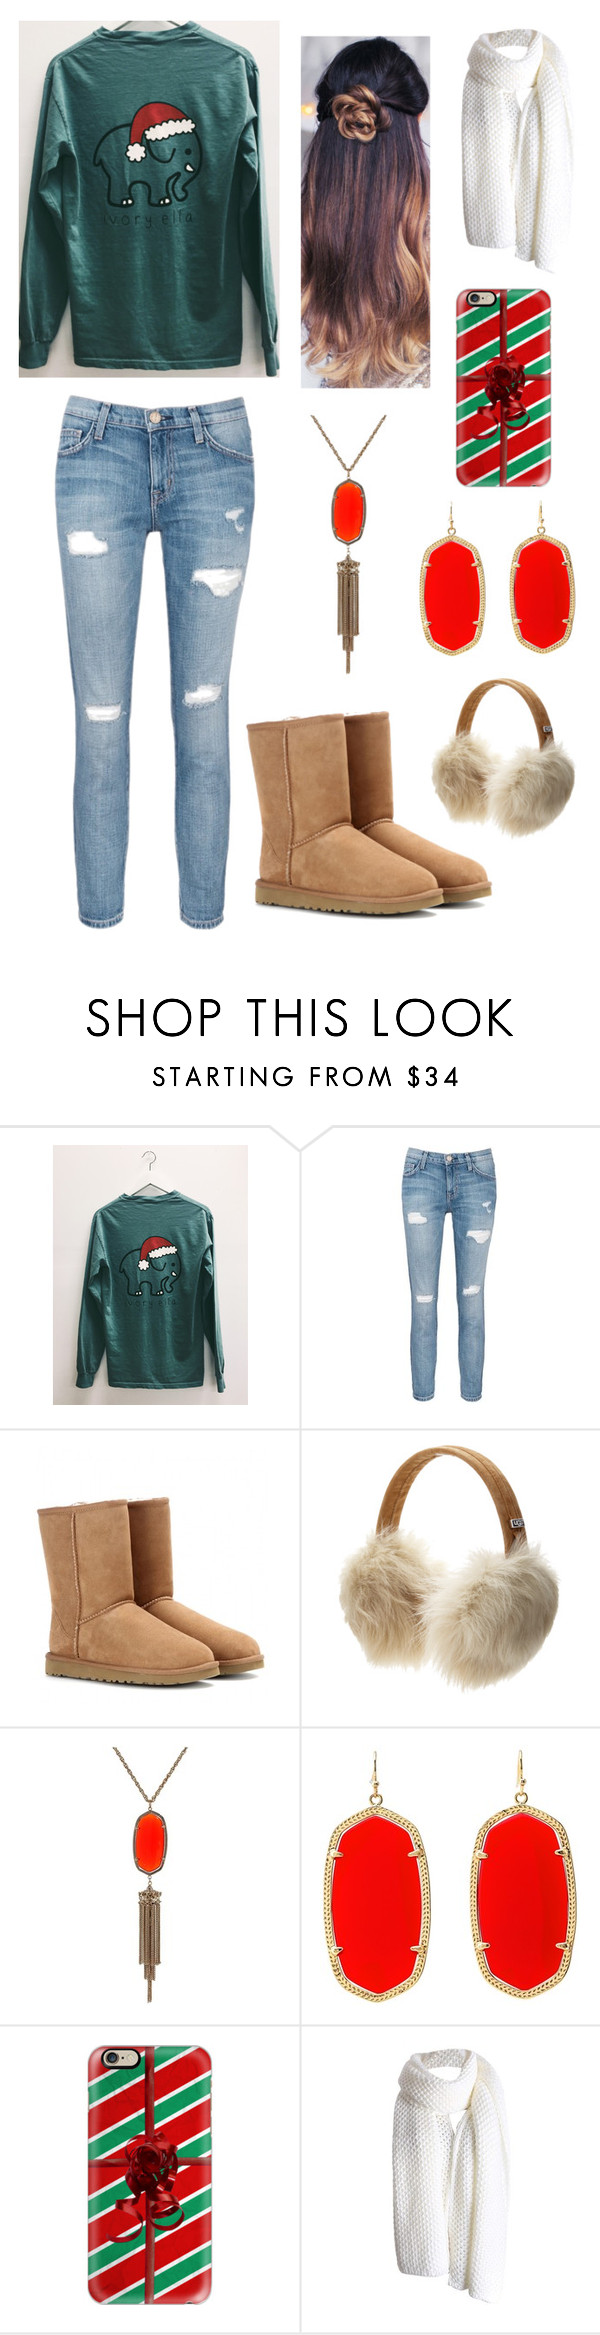 """""""xmas is in 17 days!!!"""" by emmaks9 ❤ liked on Polyvore featuring Current/Elliott, UGG Australia, Kendra Scott and Casetify"""